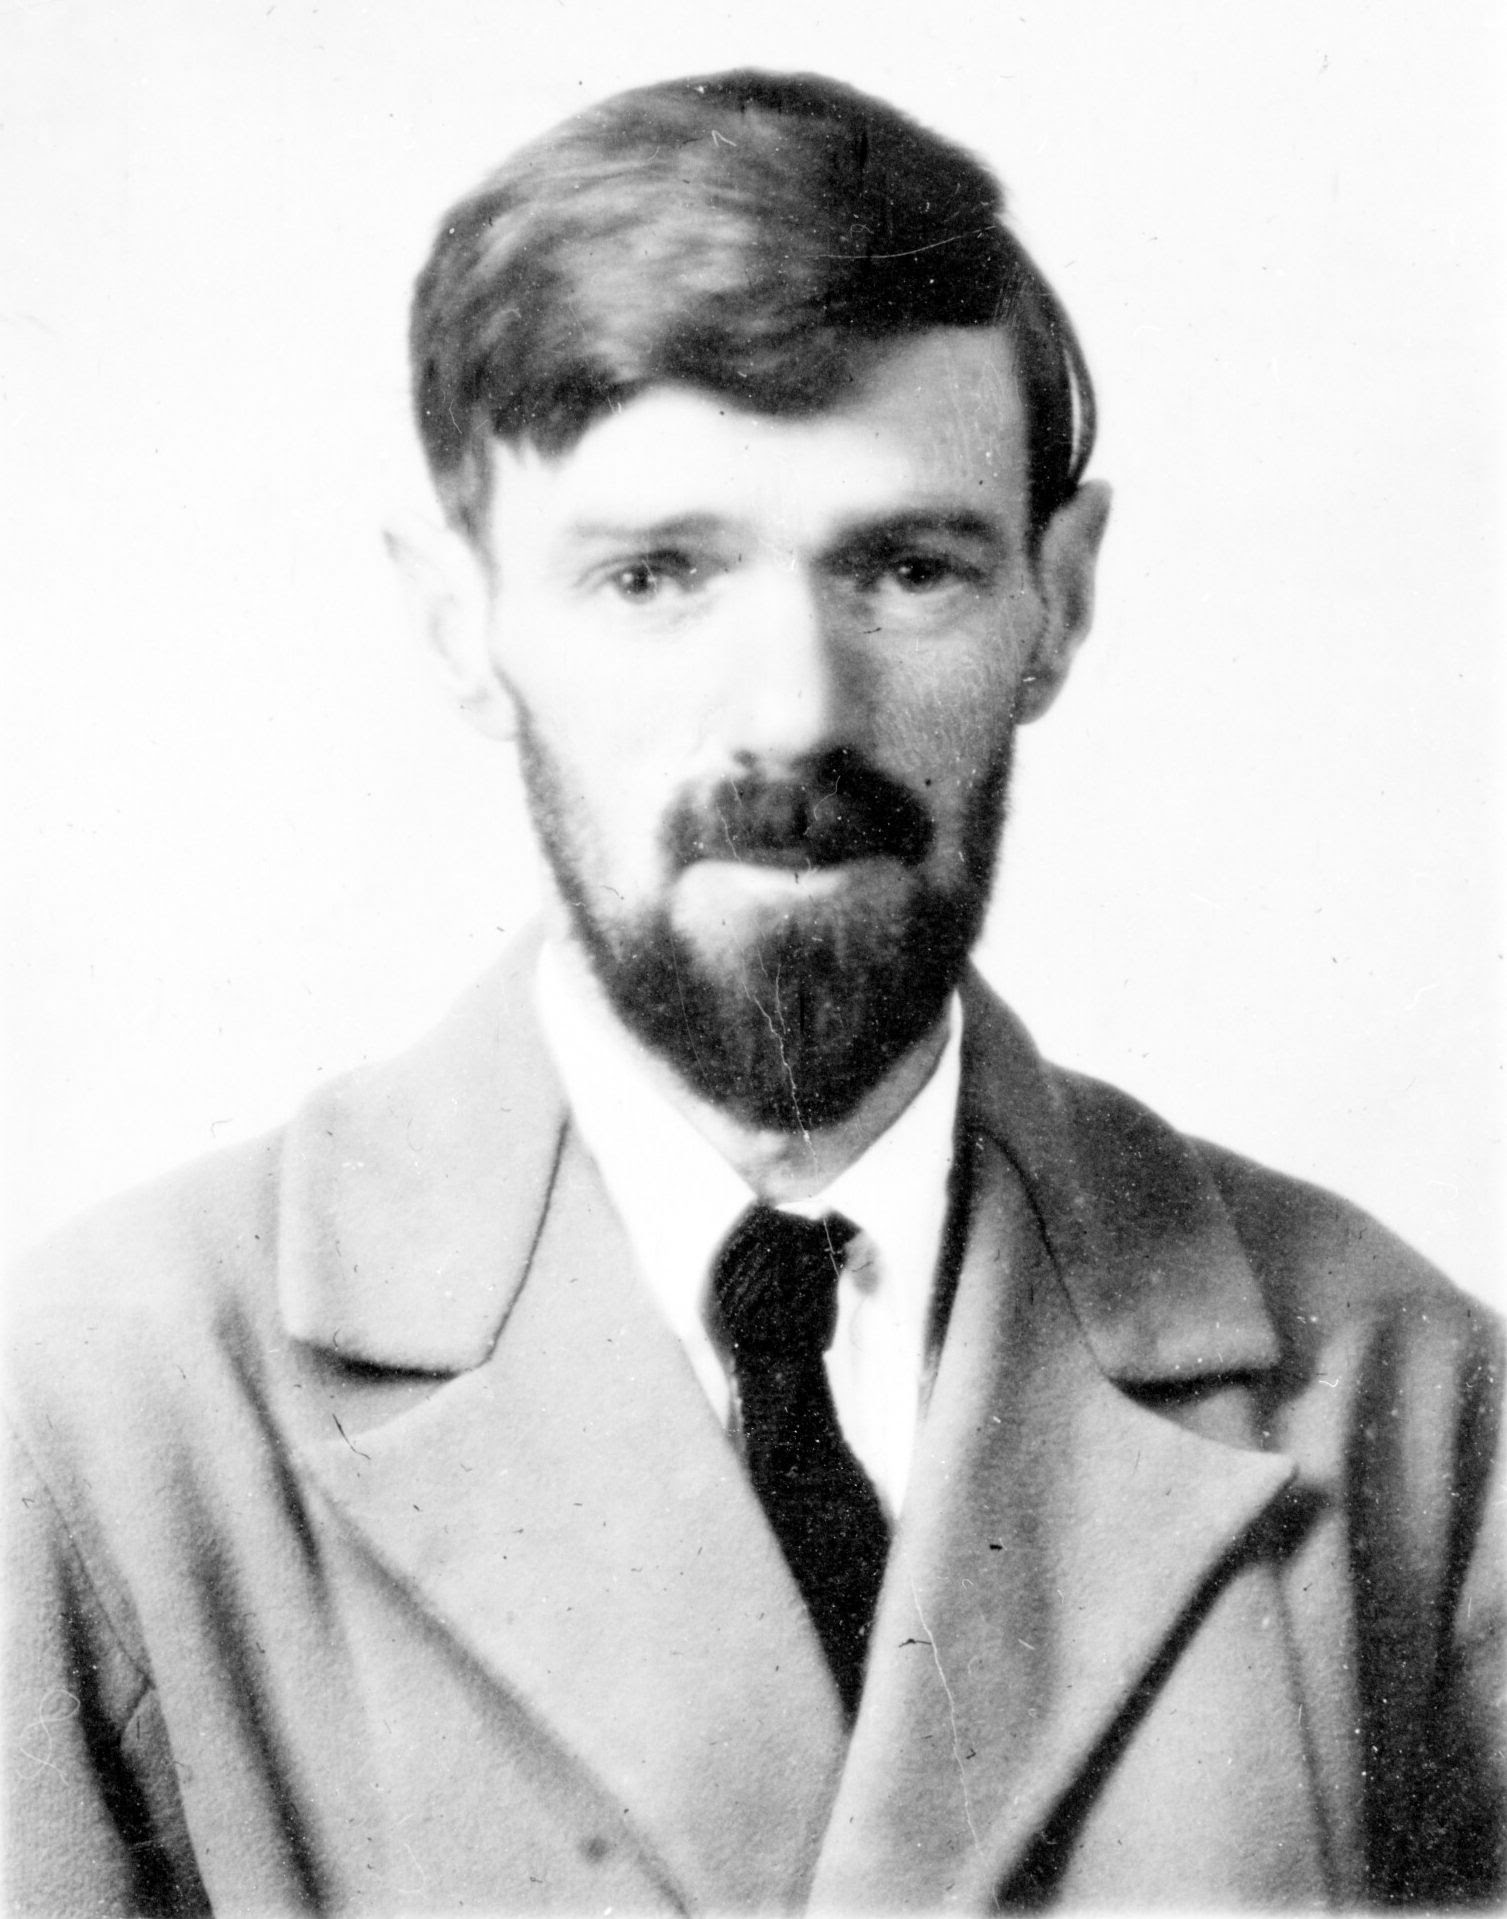 http://upload.wikimedia.org/wikipedia/commons/4/44/D_H_Lawrence_passport_photograph.jpg